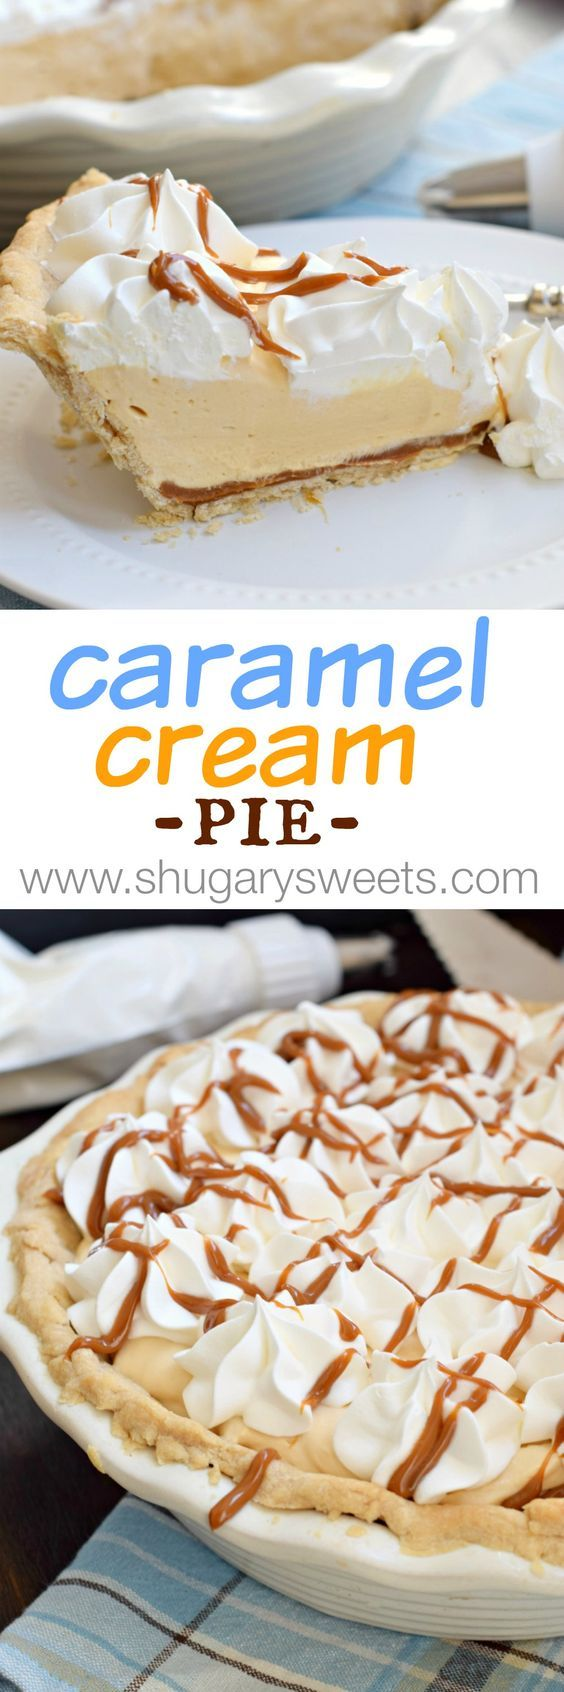 Caramel Cream Pie with an easy homemade pie crust recipe! You can do this!